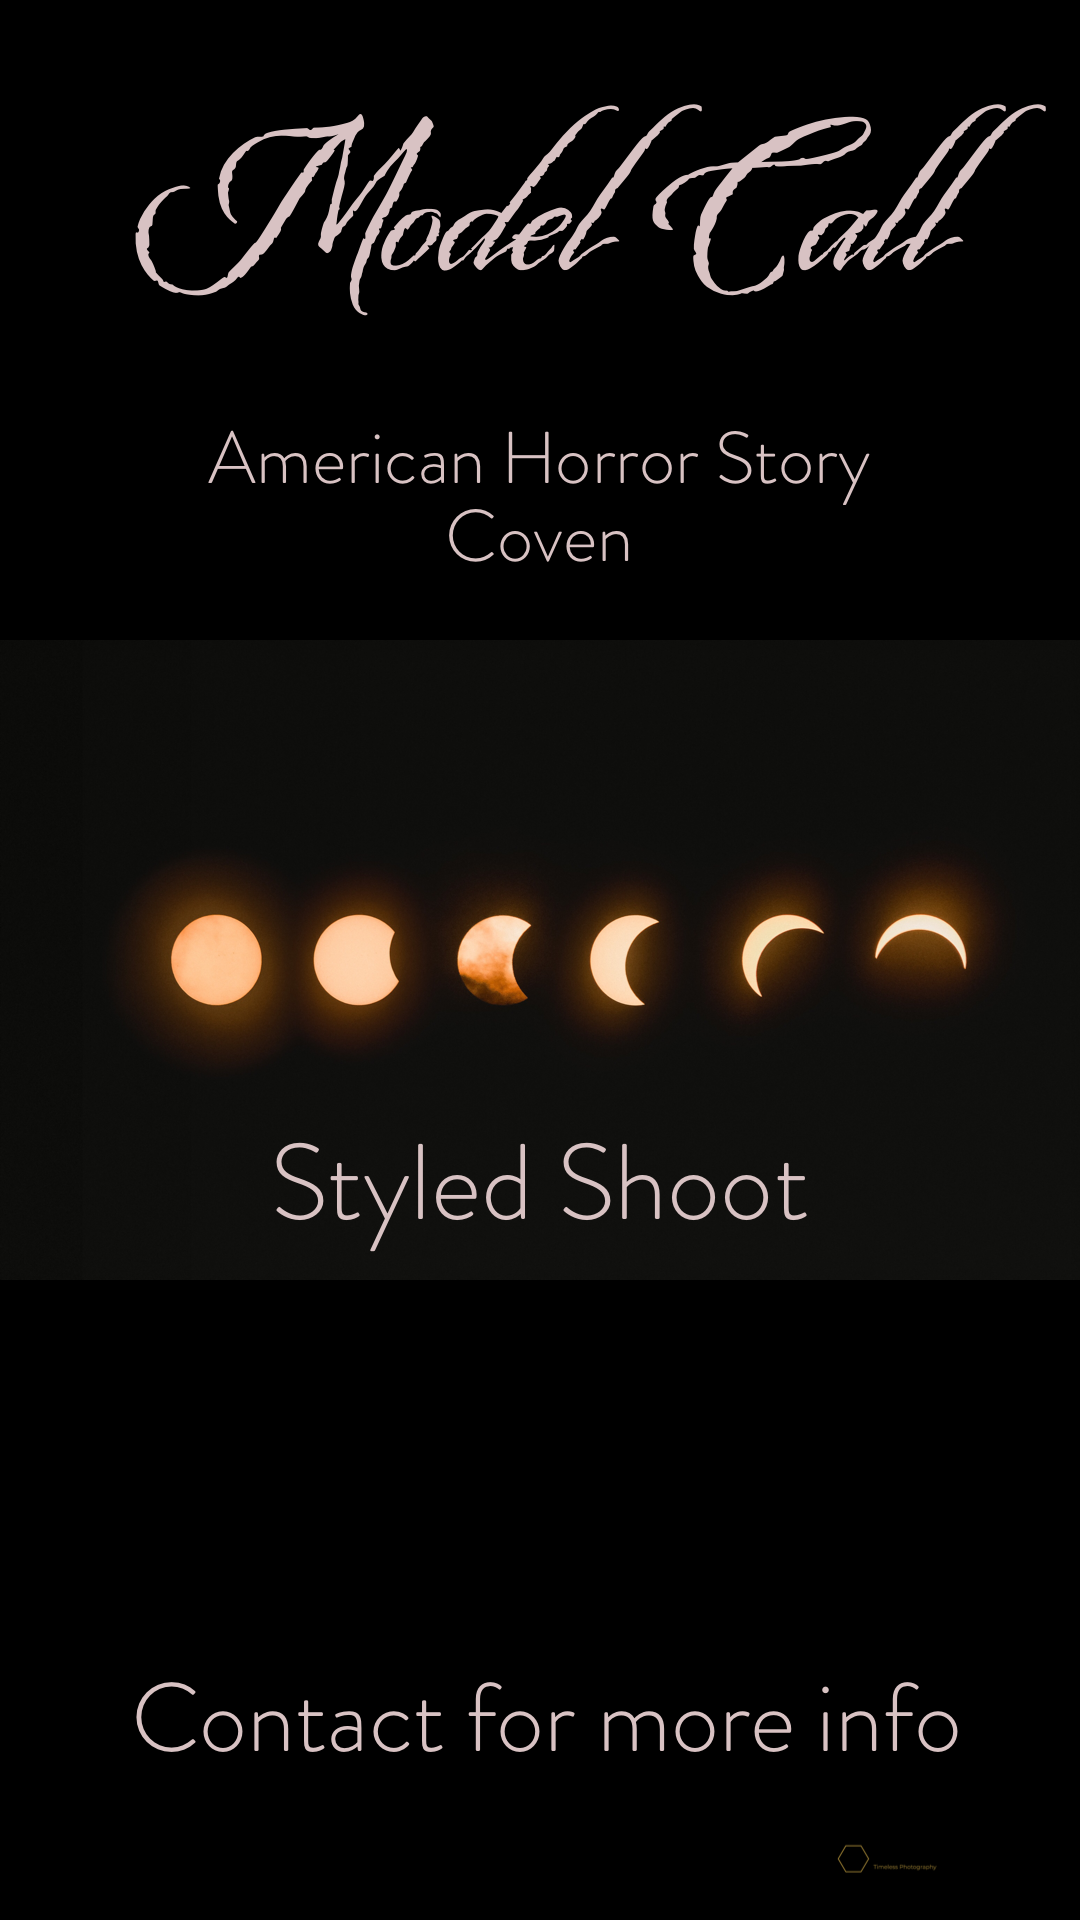 Coven - Calling all you spooky ladies! This is an AHS inspired theme shoot. Must wear all black and big black hats. Shoot date is October 12th. Deadline to apply is October 1st @ midnight.